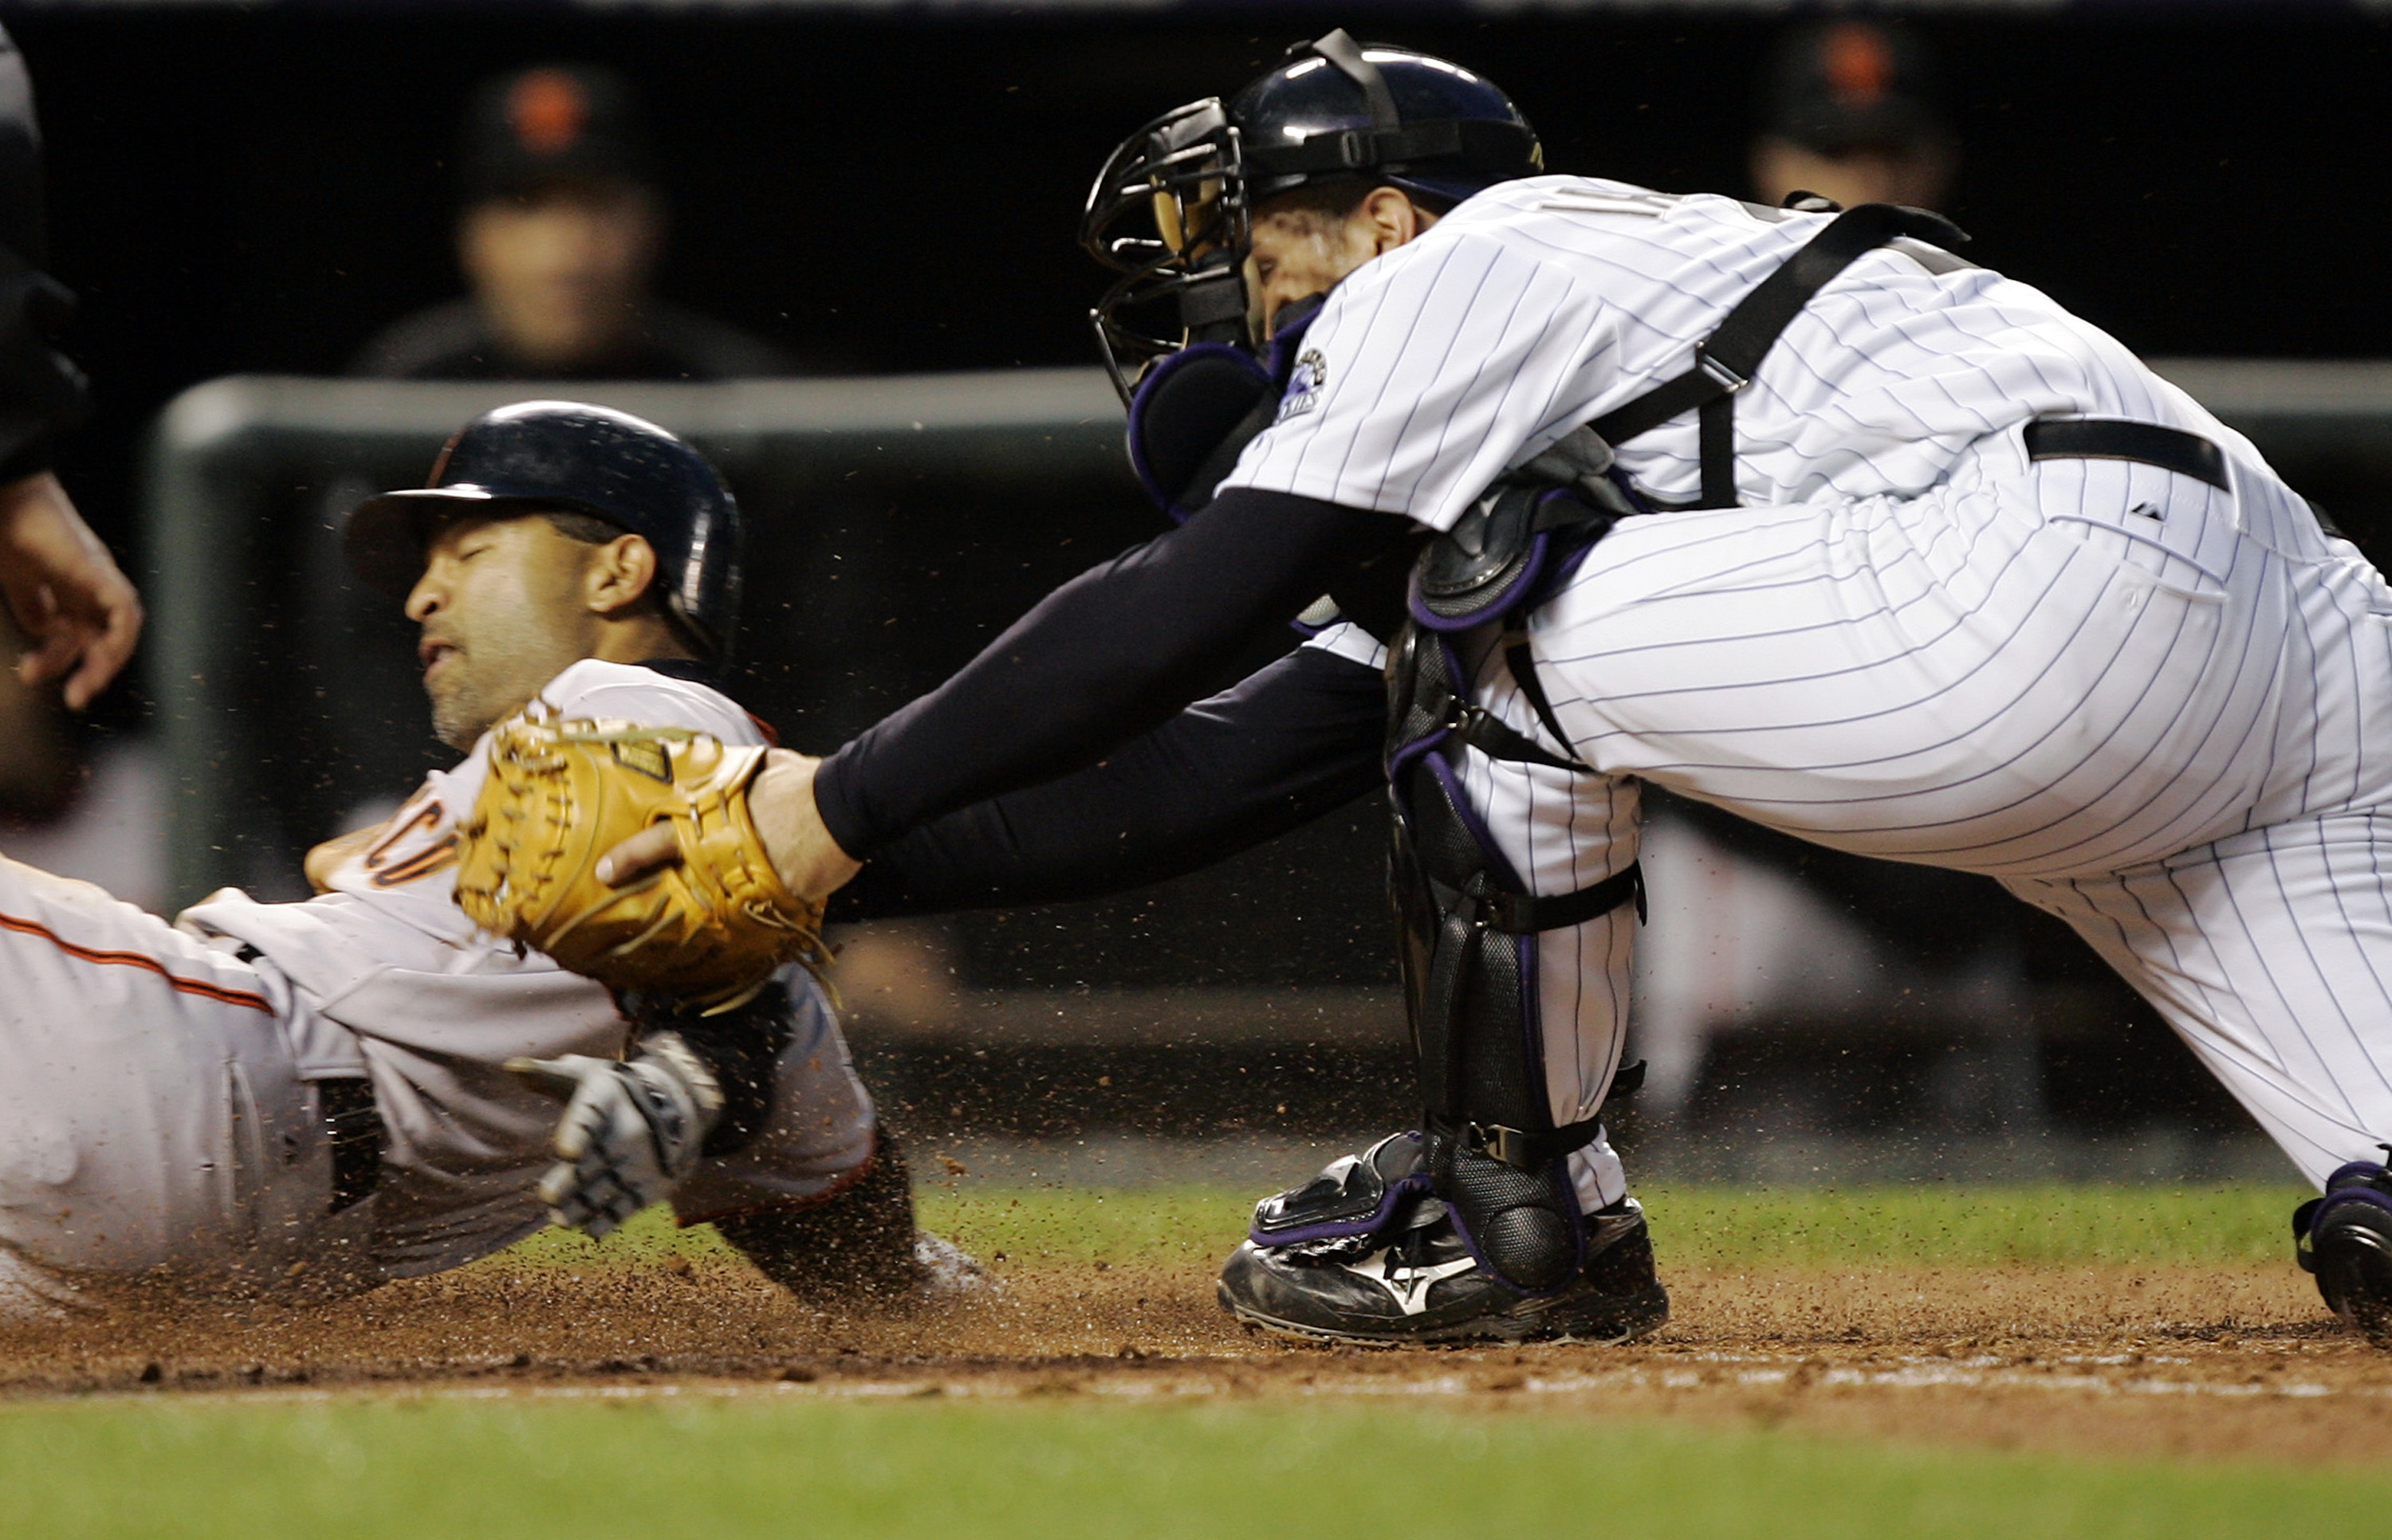 DENVER - APRIL 16:  Dave Roberts #10 of the San Francisco Giants slides safely past catcher Chris Iannetta #20 of the Colorado Rockies on a sacrifice fly by Rich Aurilia in the fourth inning on April 16, 2007 at Coors Field in Denver, Colorado.  (Photo by